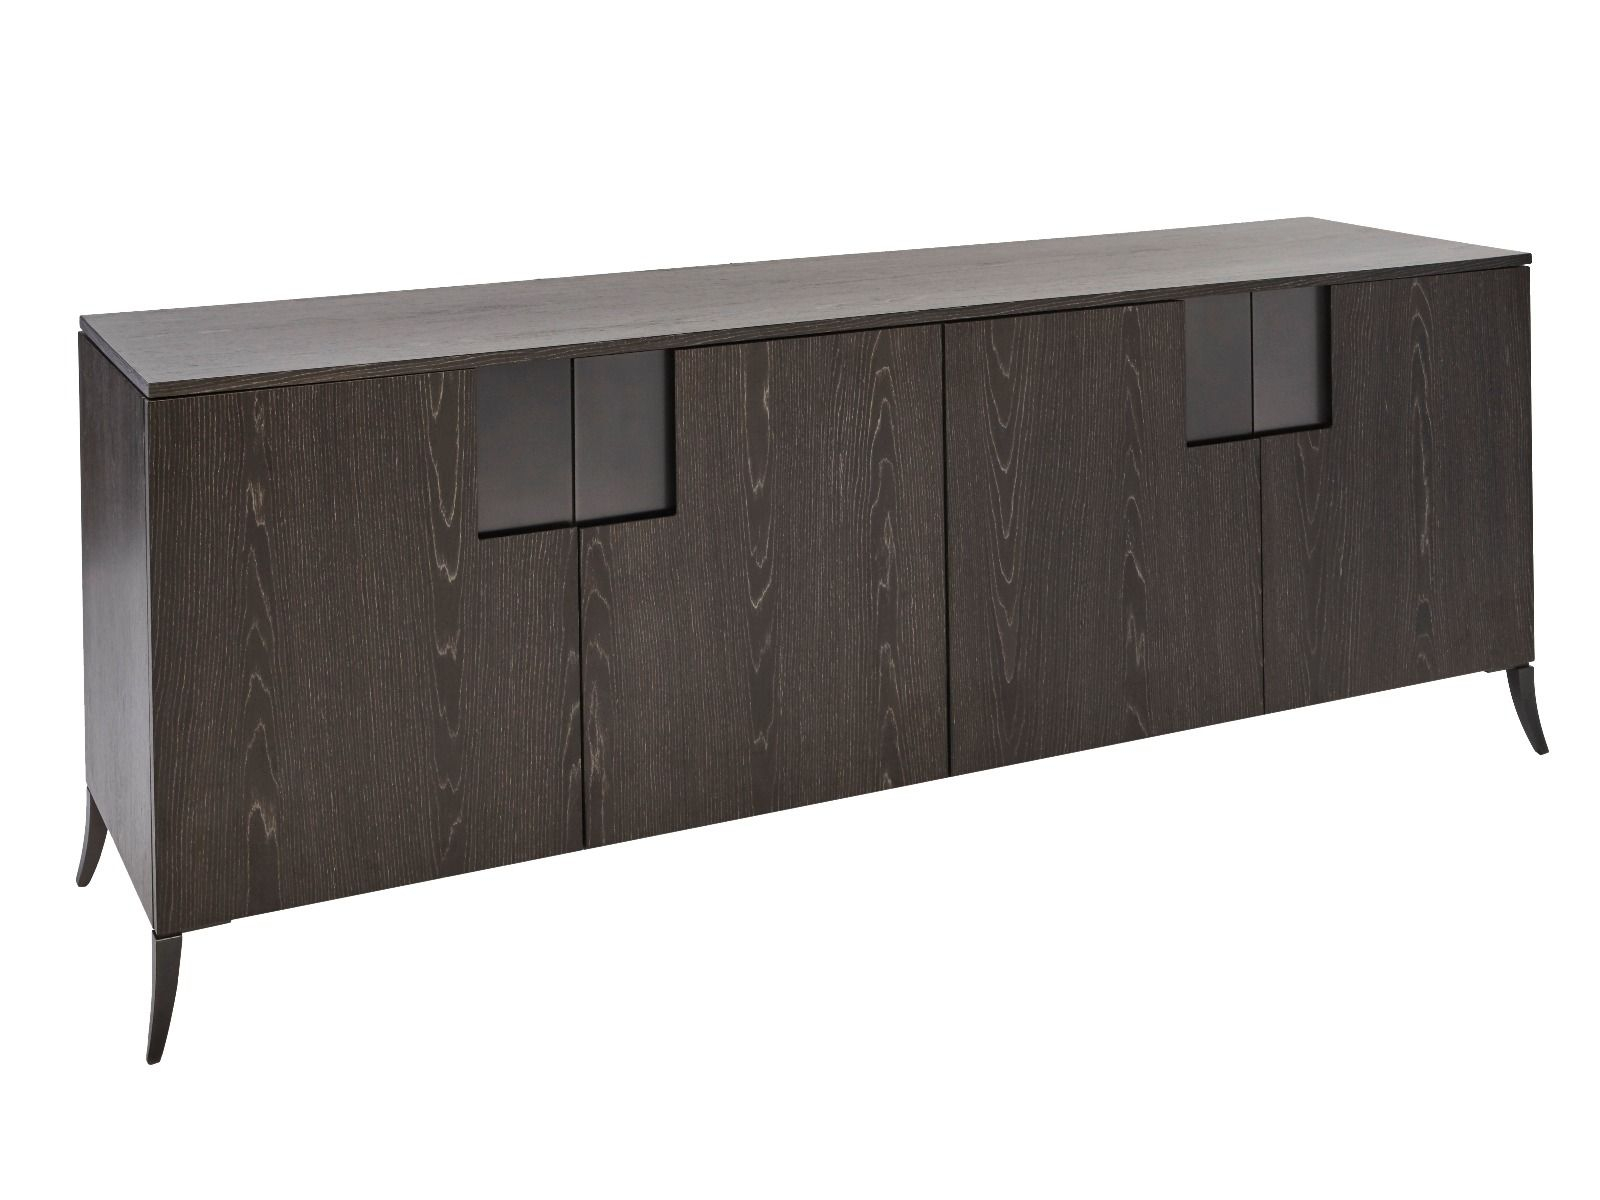 Buffet Sideboard Double Length Regarding 2 Shelf Buffets With Curved Legs (View 7 of 30)